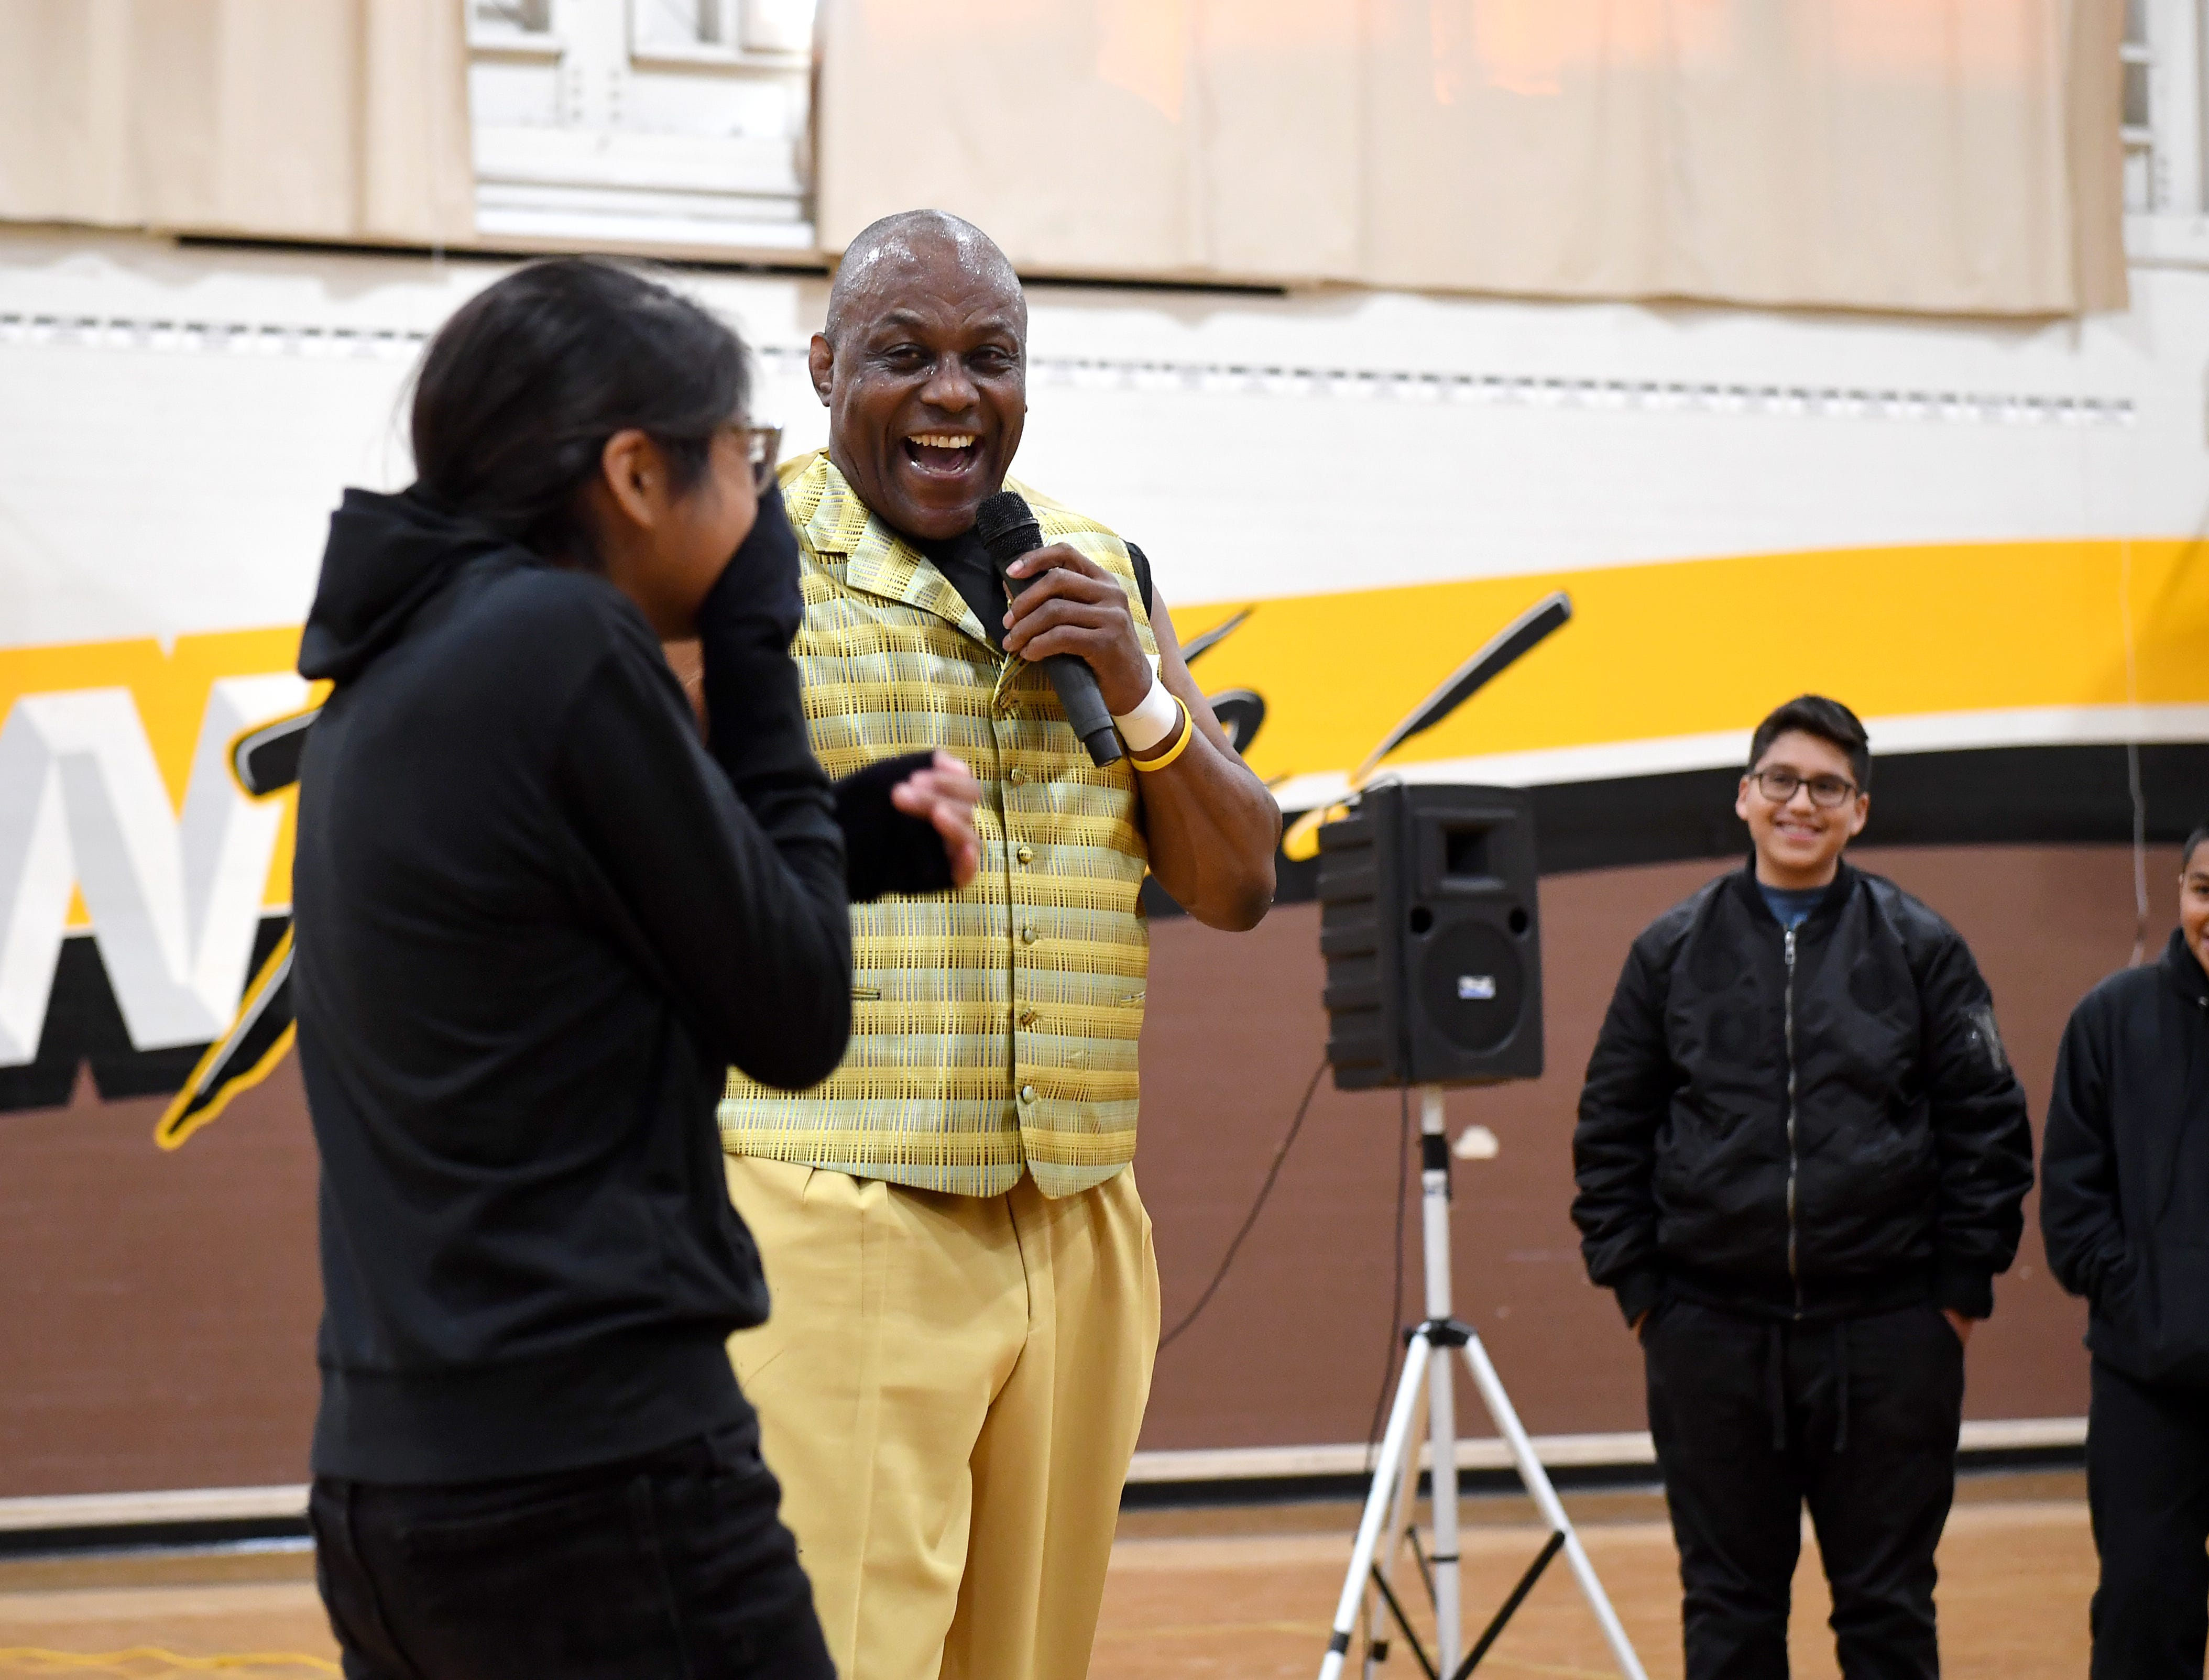 James Thompson jokes around with a student at El Sausal Middle School during a visit on Feb. 21, 2019.